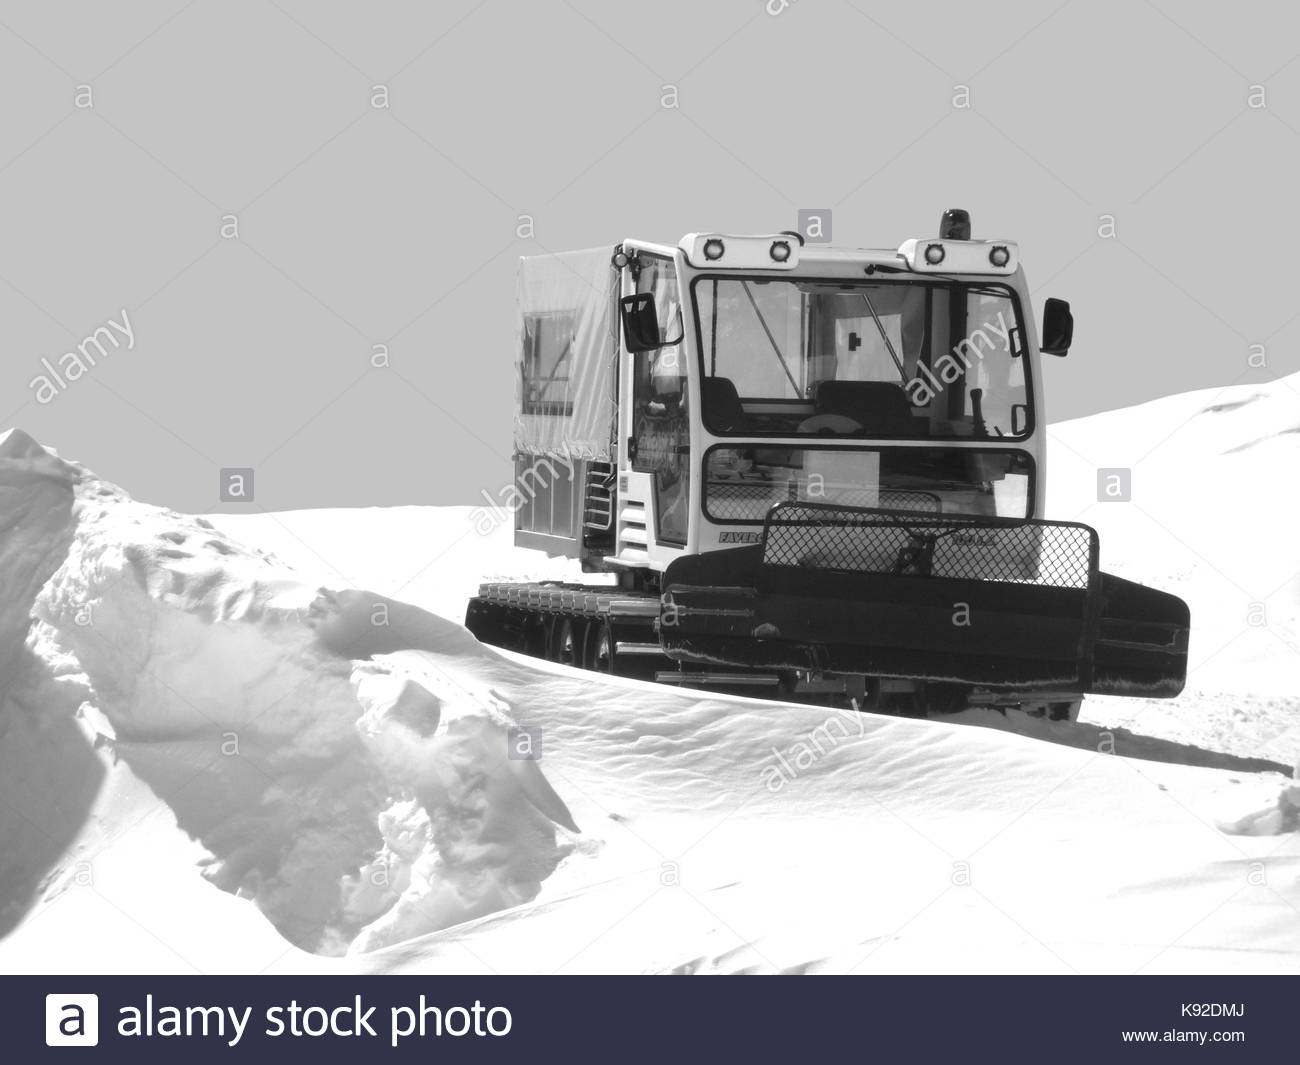 snowcat parked on a snowcapped territory - Stock Image